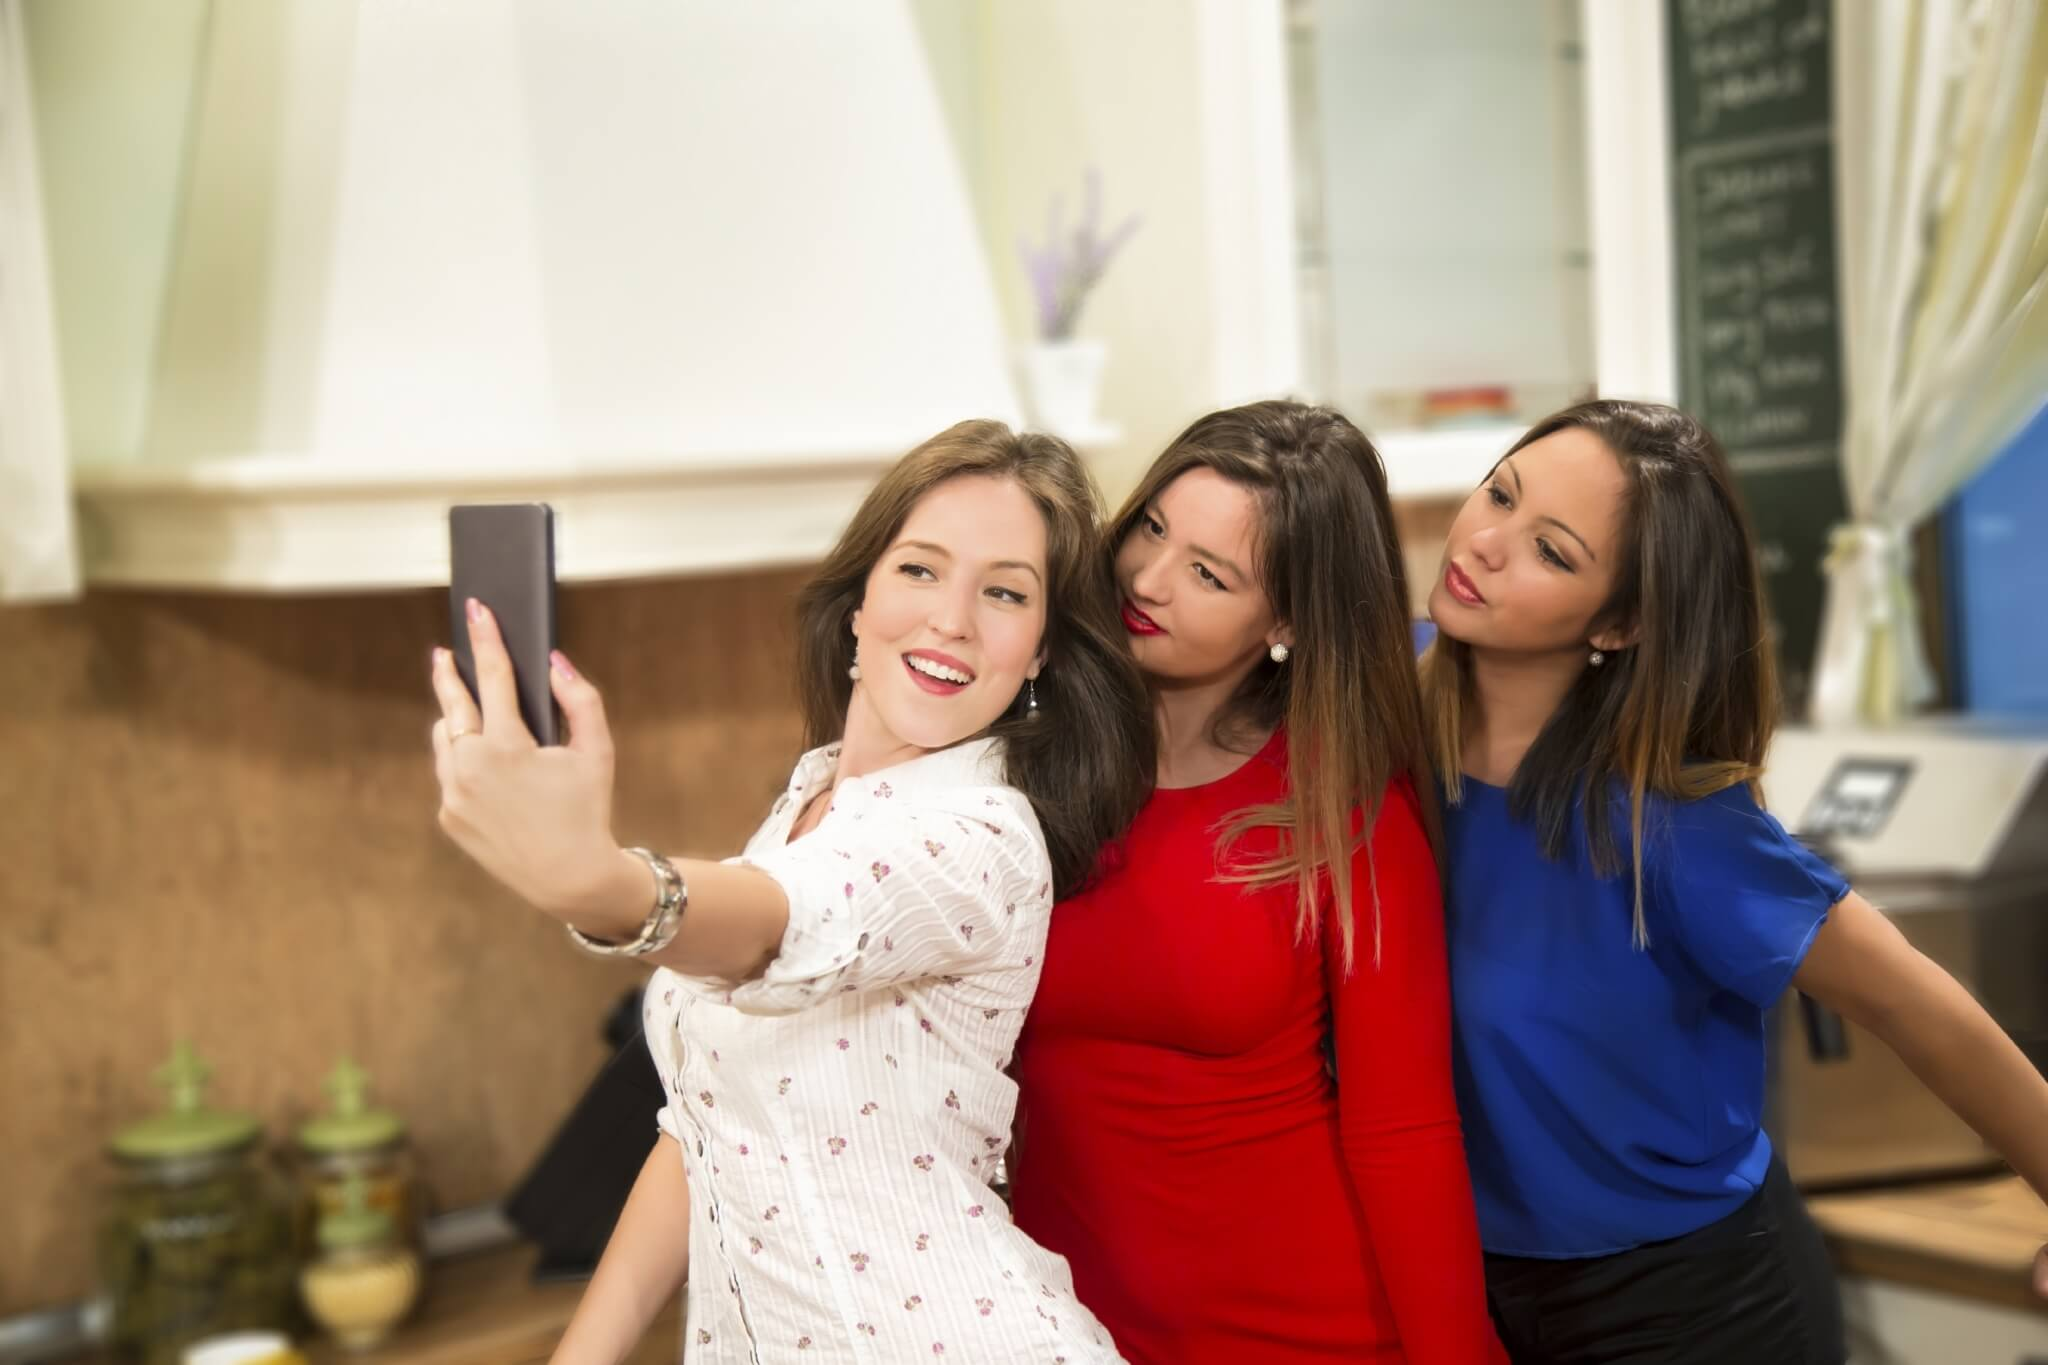 Young-women-taking-selfie-with-smart-phone-at-home-000070919941_Large.jpg.jpeg